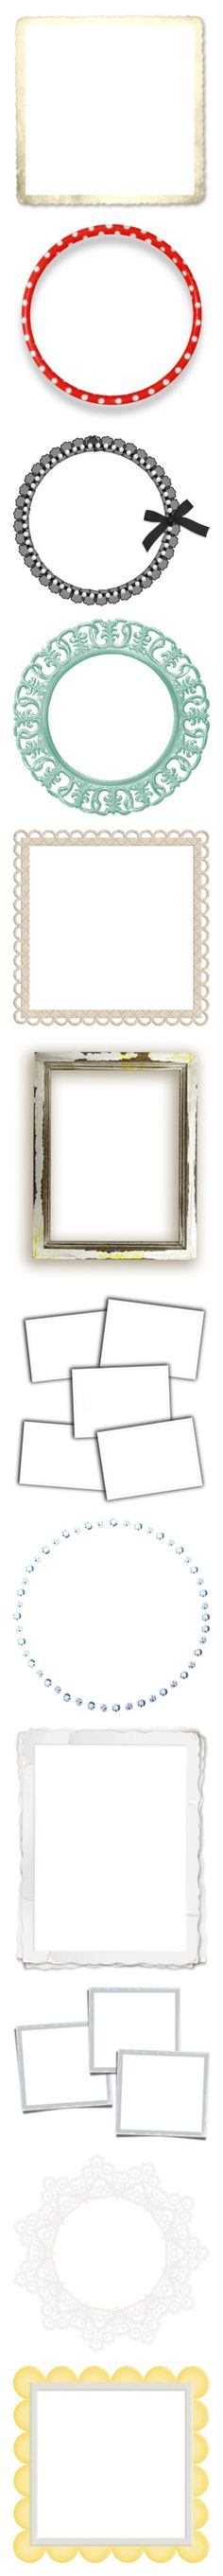 """""""Frames~"""" by tabithahallows ❤ liked on Polyvore featuring frames, backgrounds, borders, photo frames, picture frames, circle, circular, picture frame, round and shoes"""